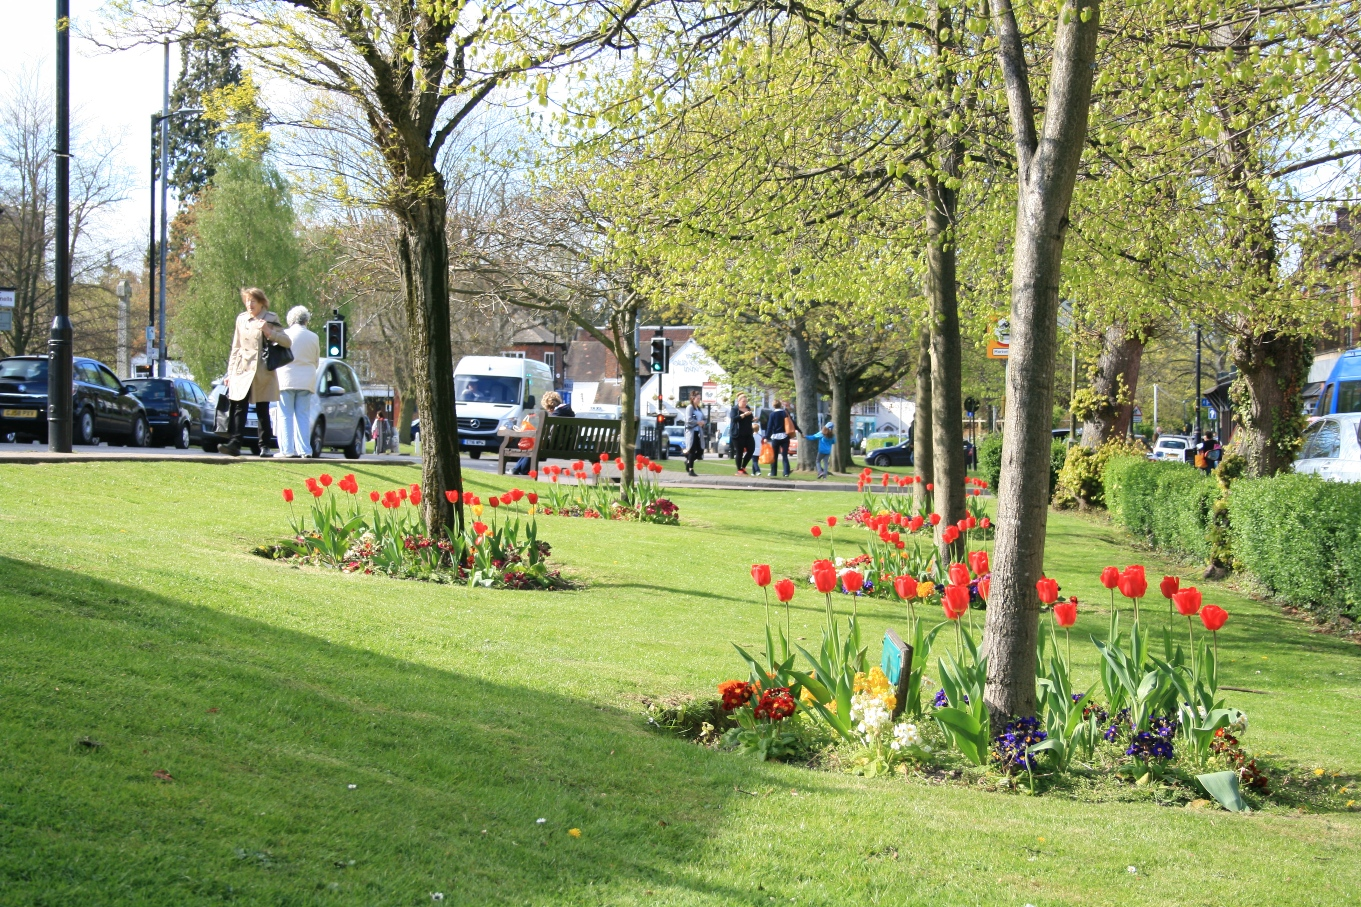 Lower High Street Harpenden showing trees coming into leaf in spring with red tulips and spring flowers on the ground © Harpenden Town Council